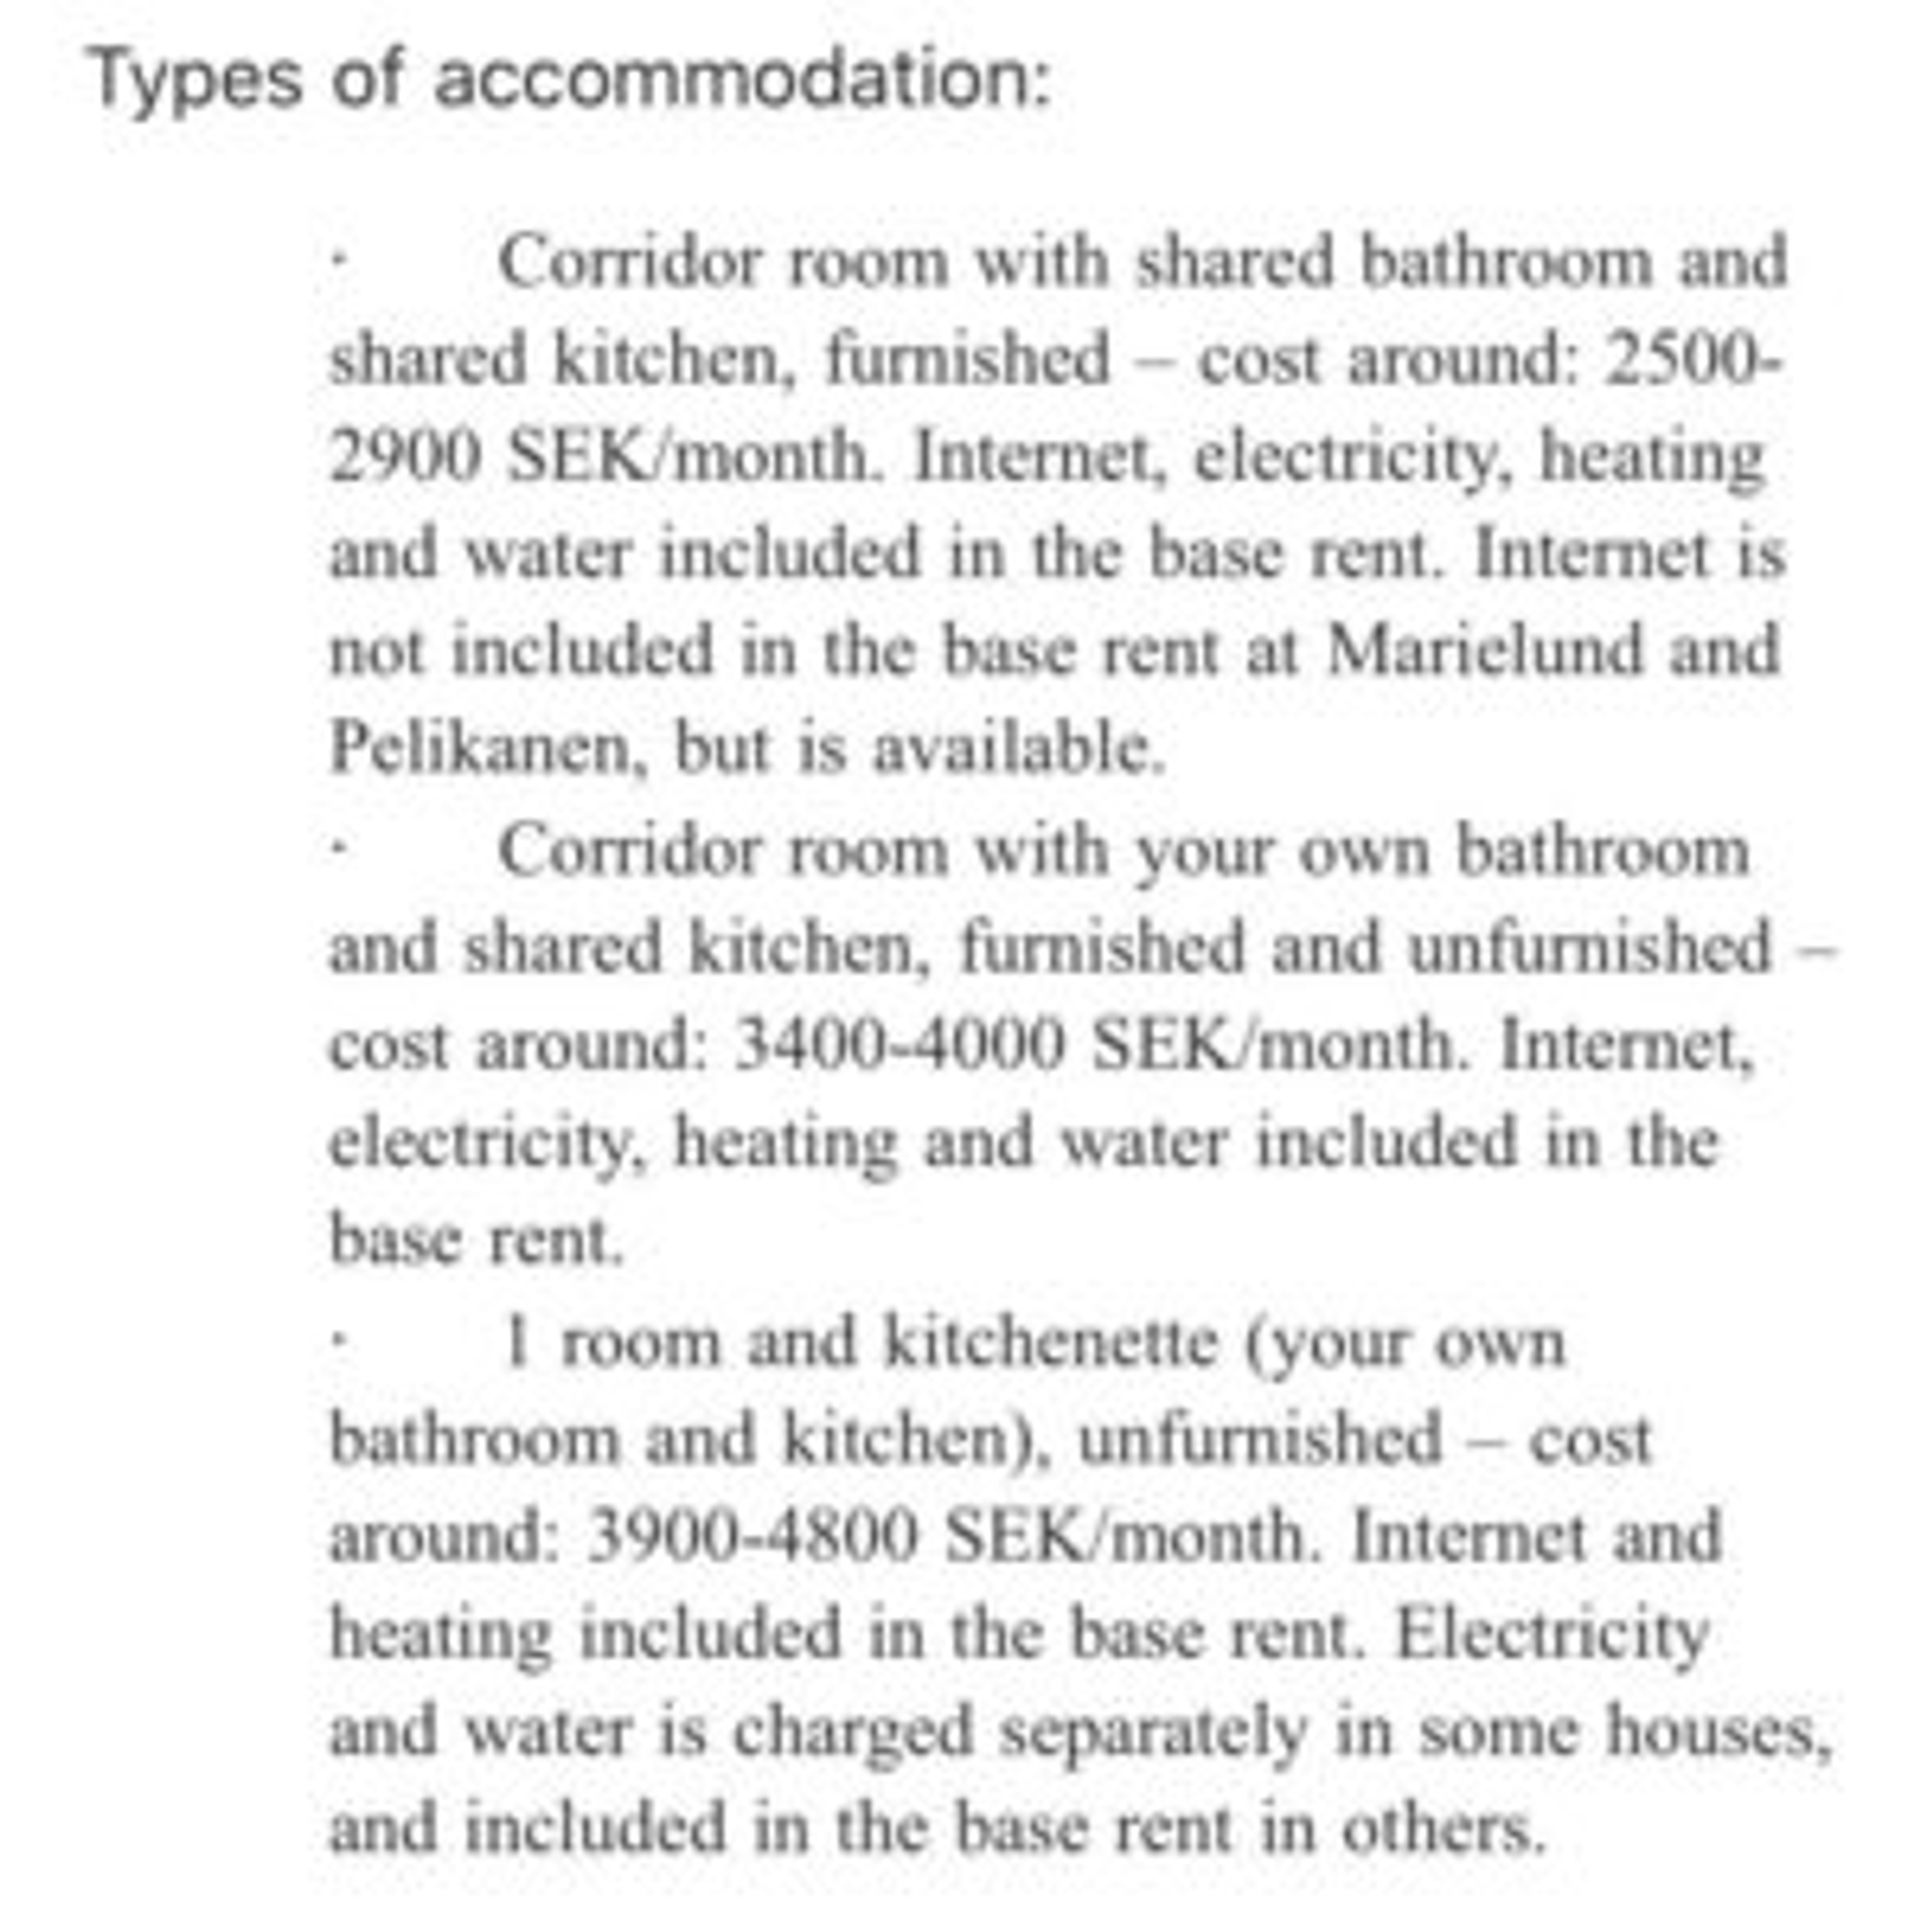 Email detailing accommodation options.